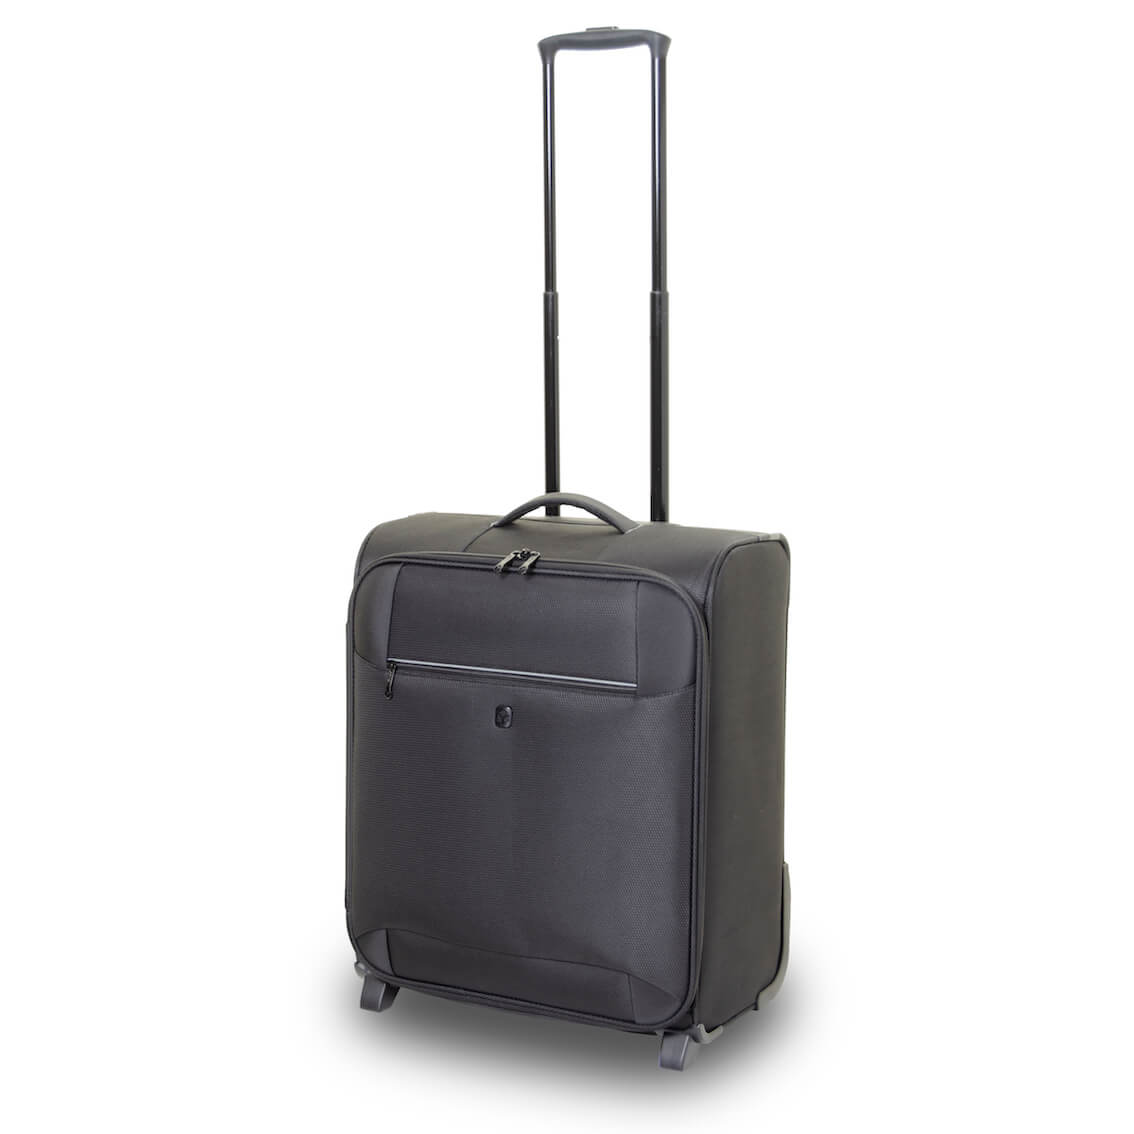 QUBEd Pi 56cm Extra Wide 2-Wheel Upright Cabin Suitcase